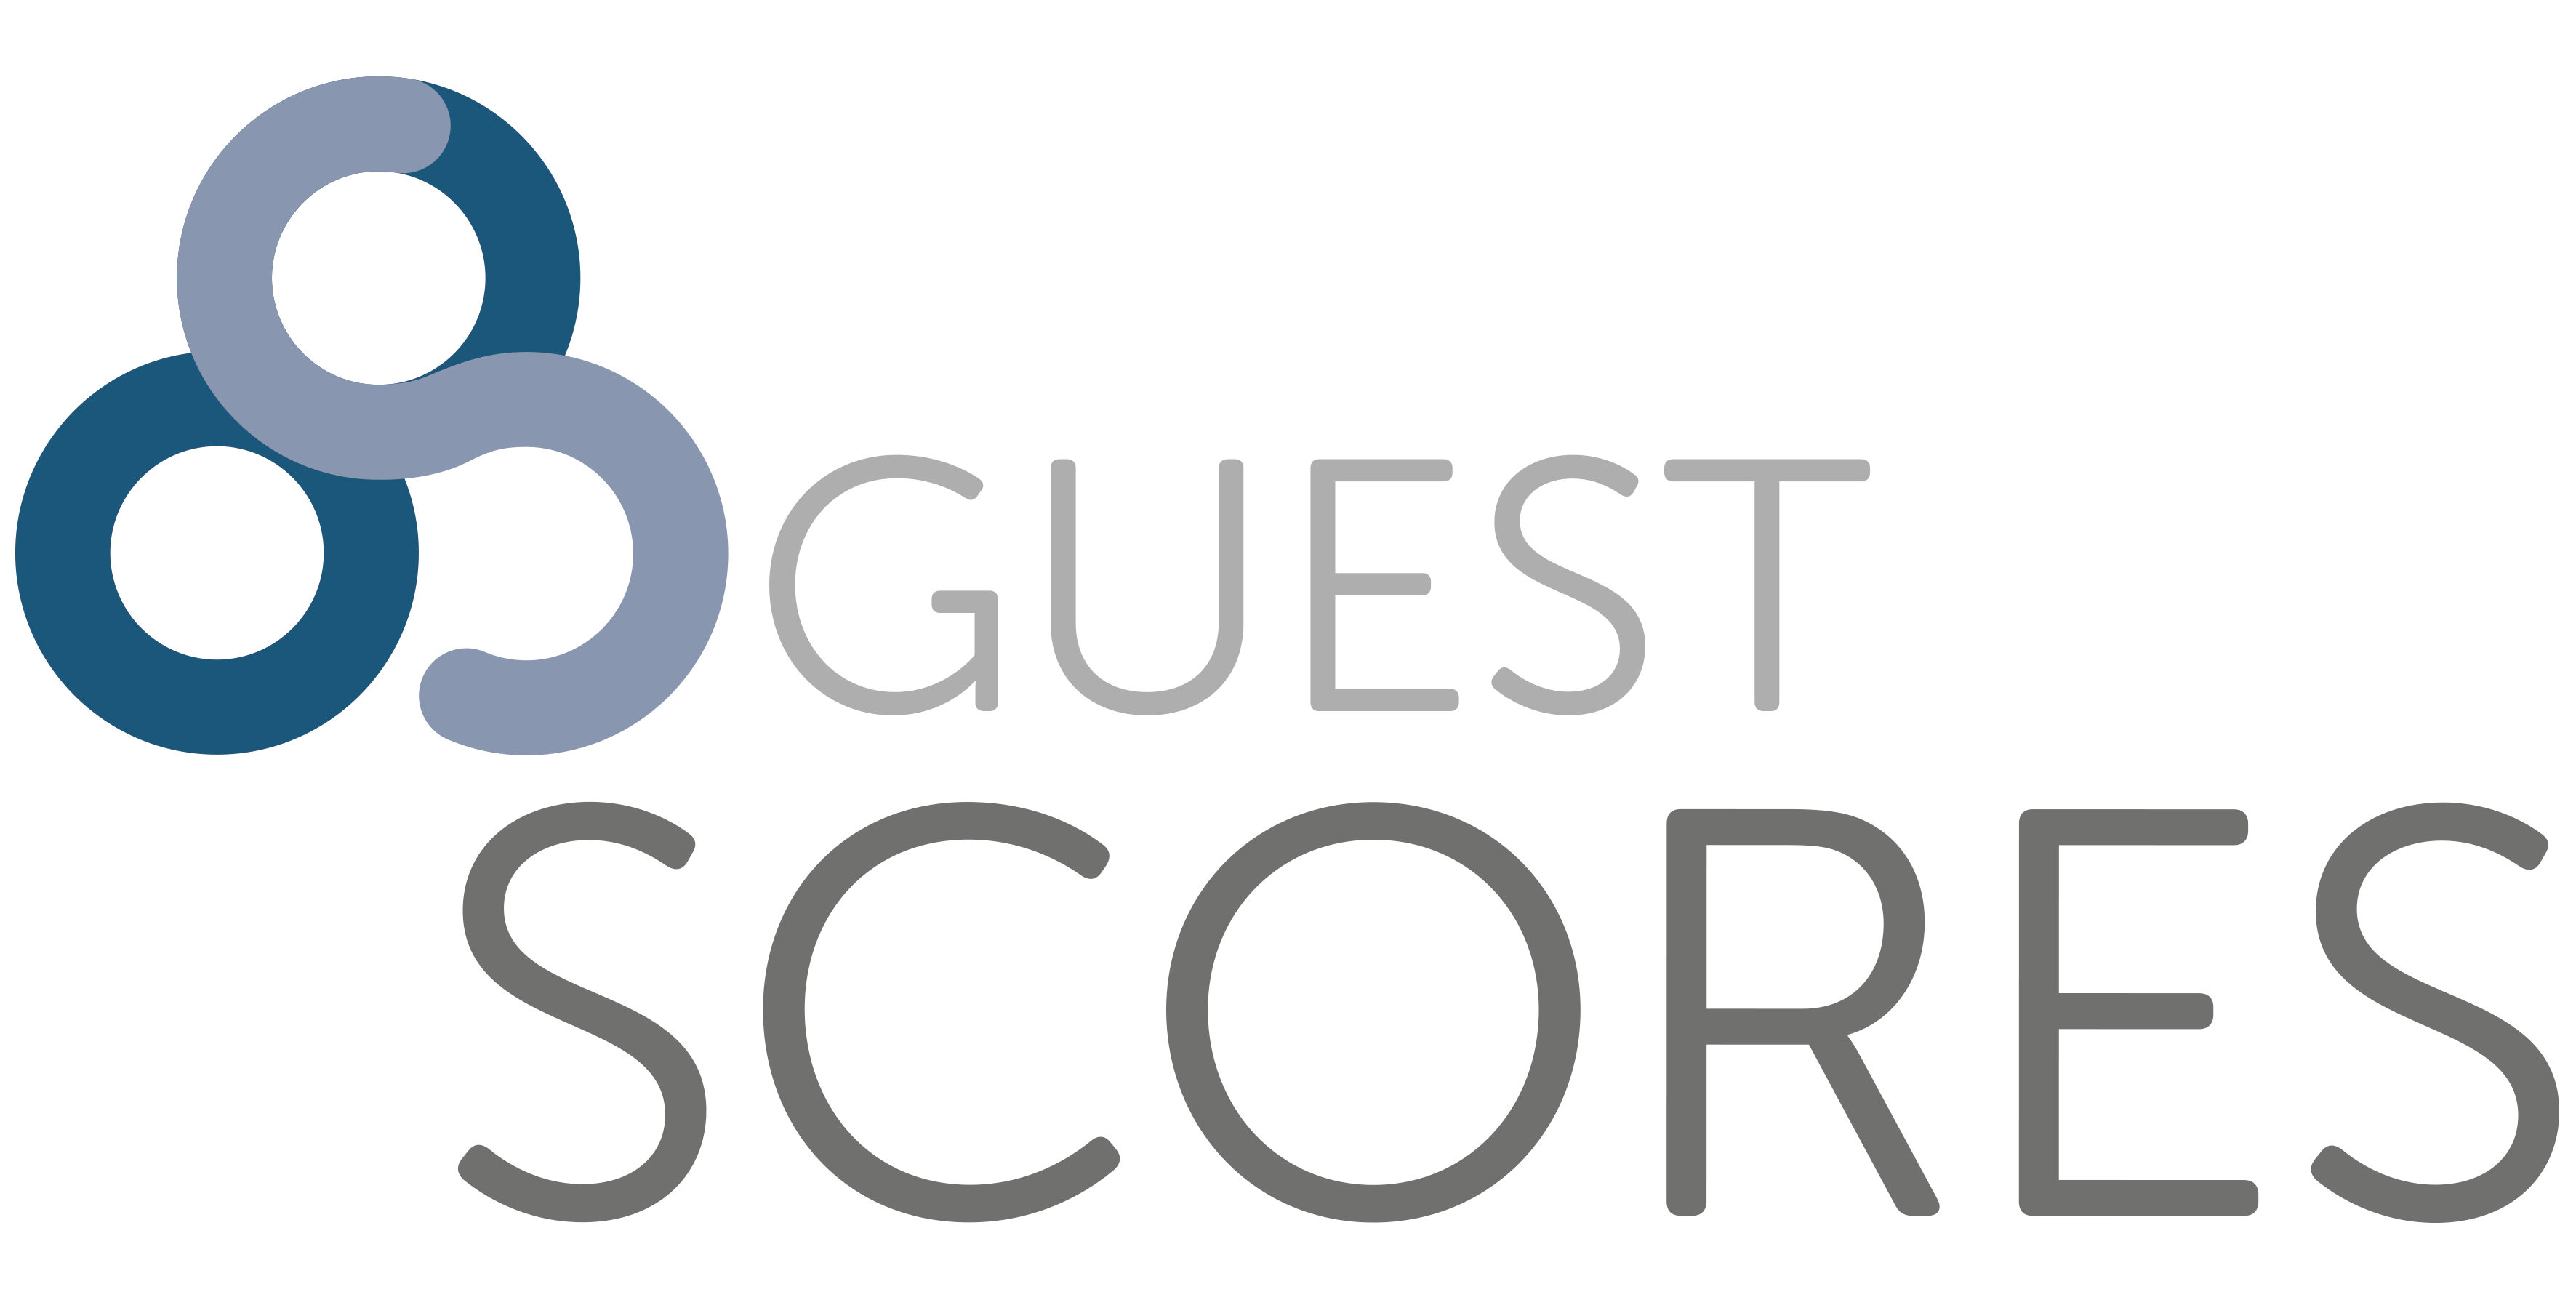 GuestScores